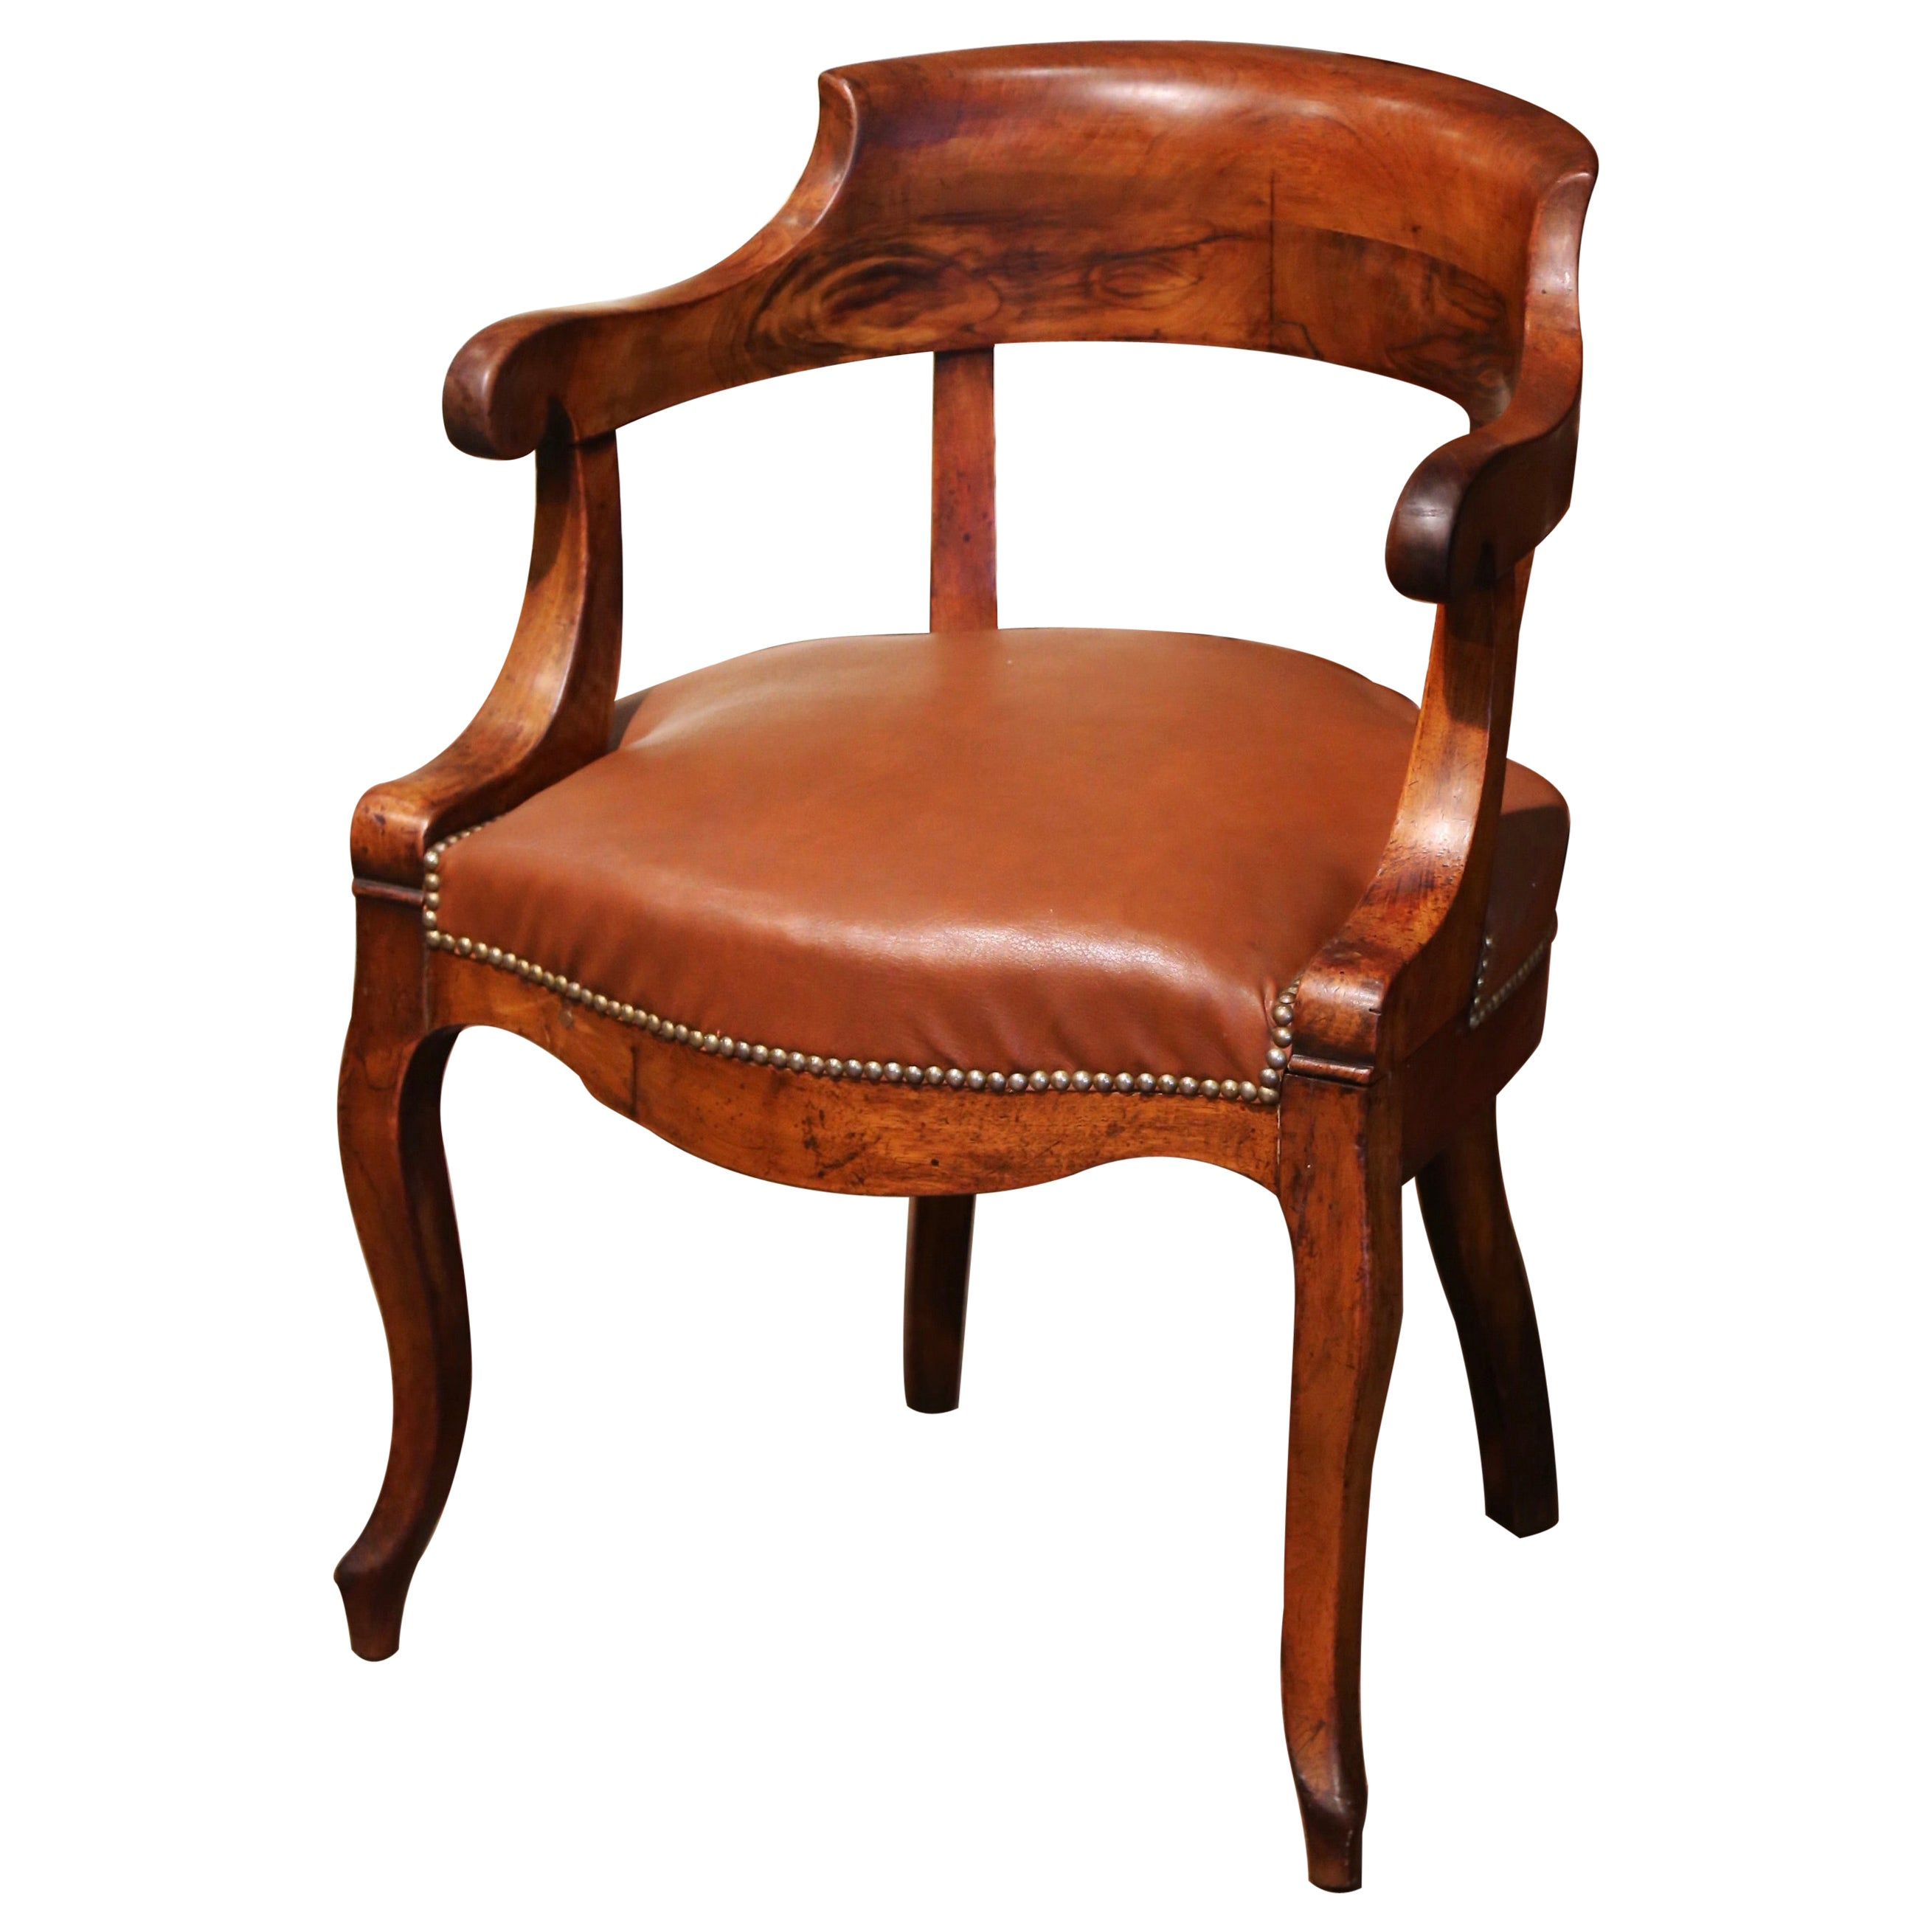 19th Century French Directoire Carved Walnut Desk Armchair with Beige Leather